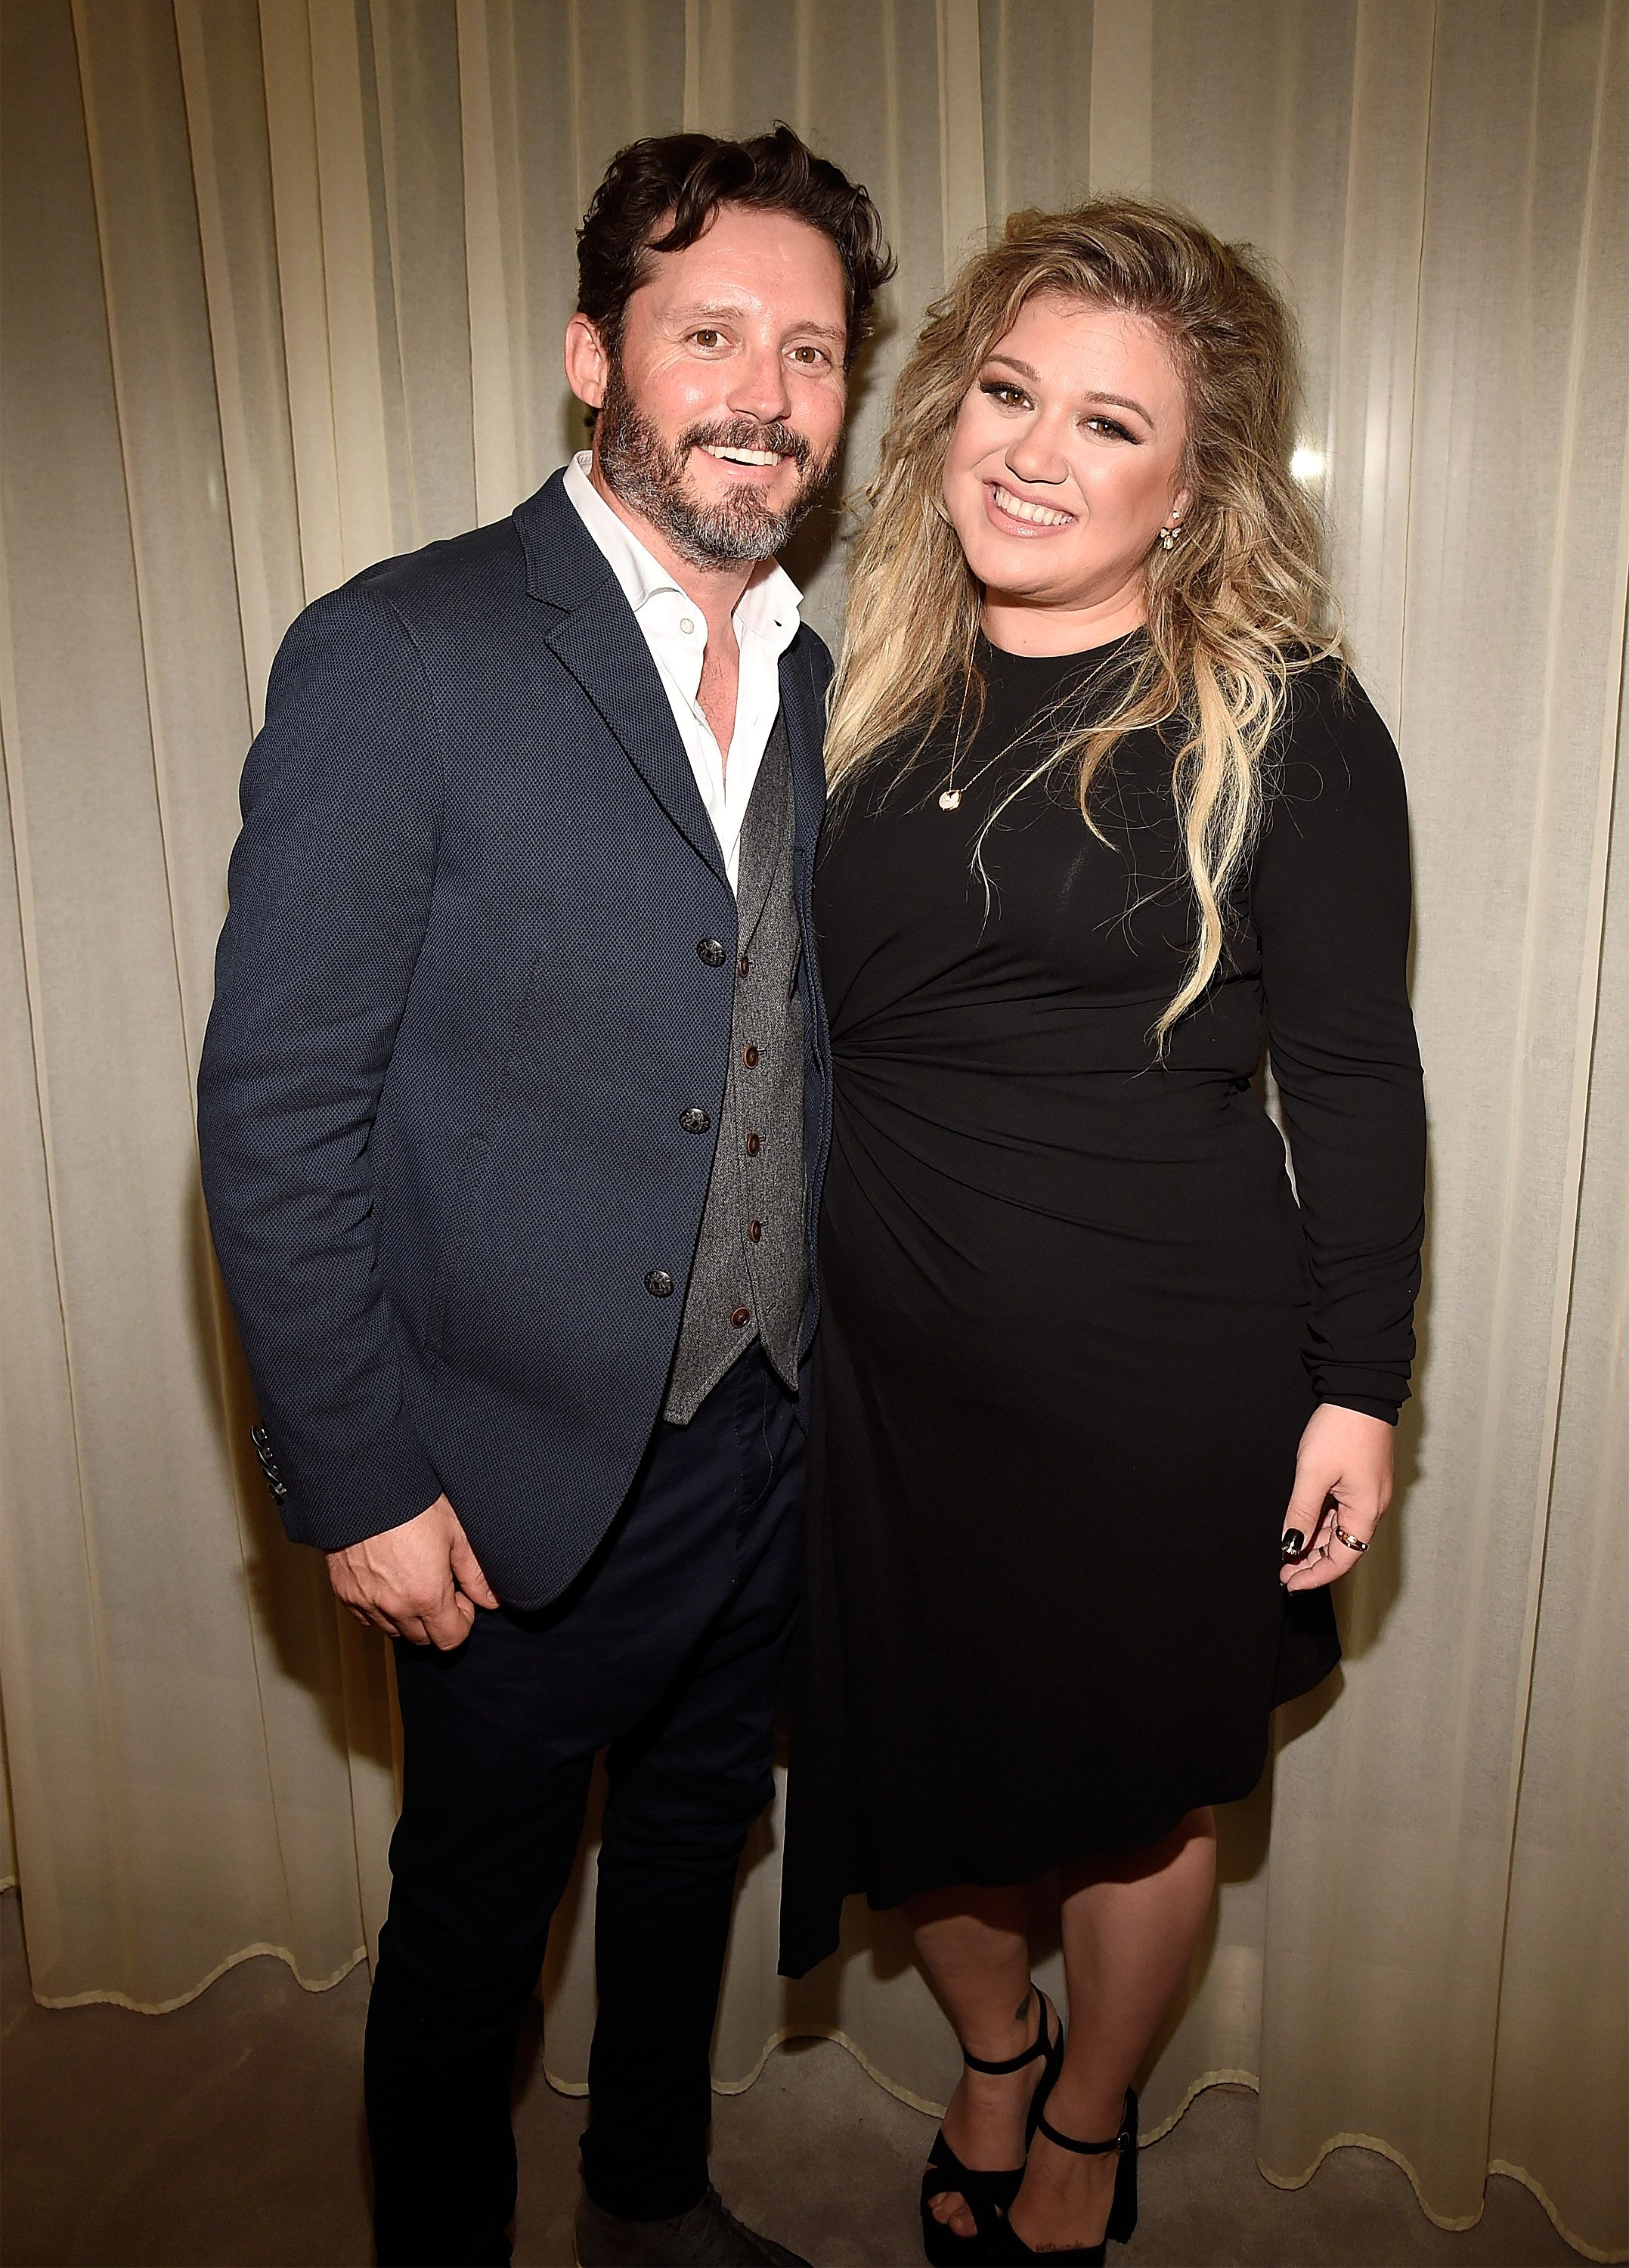 """Brandon Blackstock and Kelly Clarkson backstage after she performed songs from her new album """"The Meaning of Life"""" at The Rainbow Room on September 6, 2017 